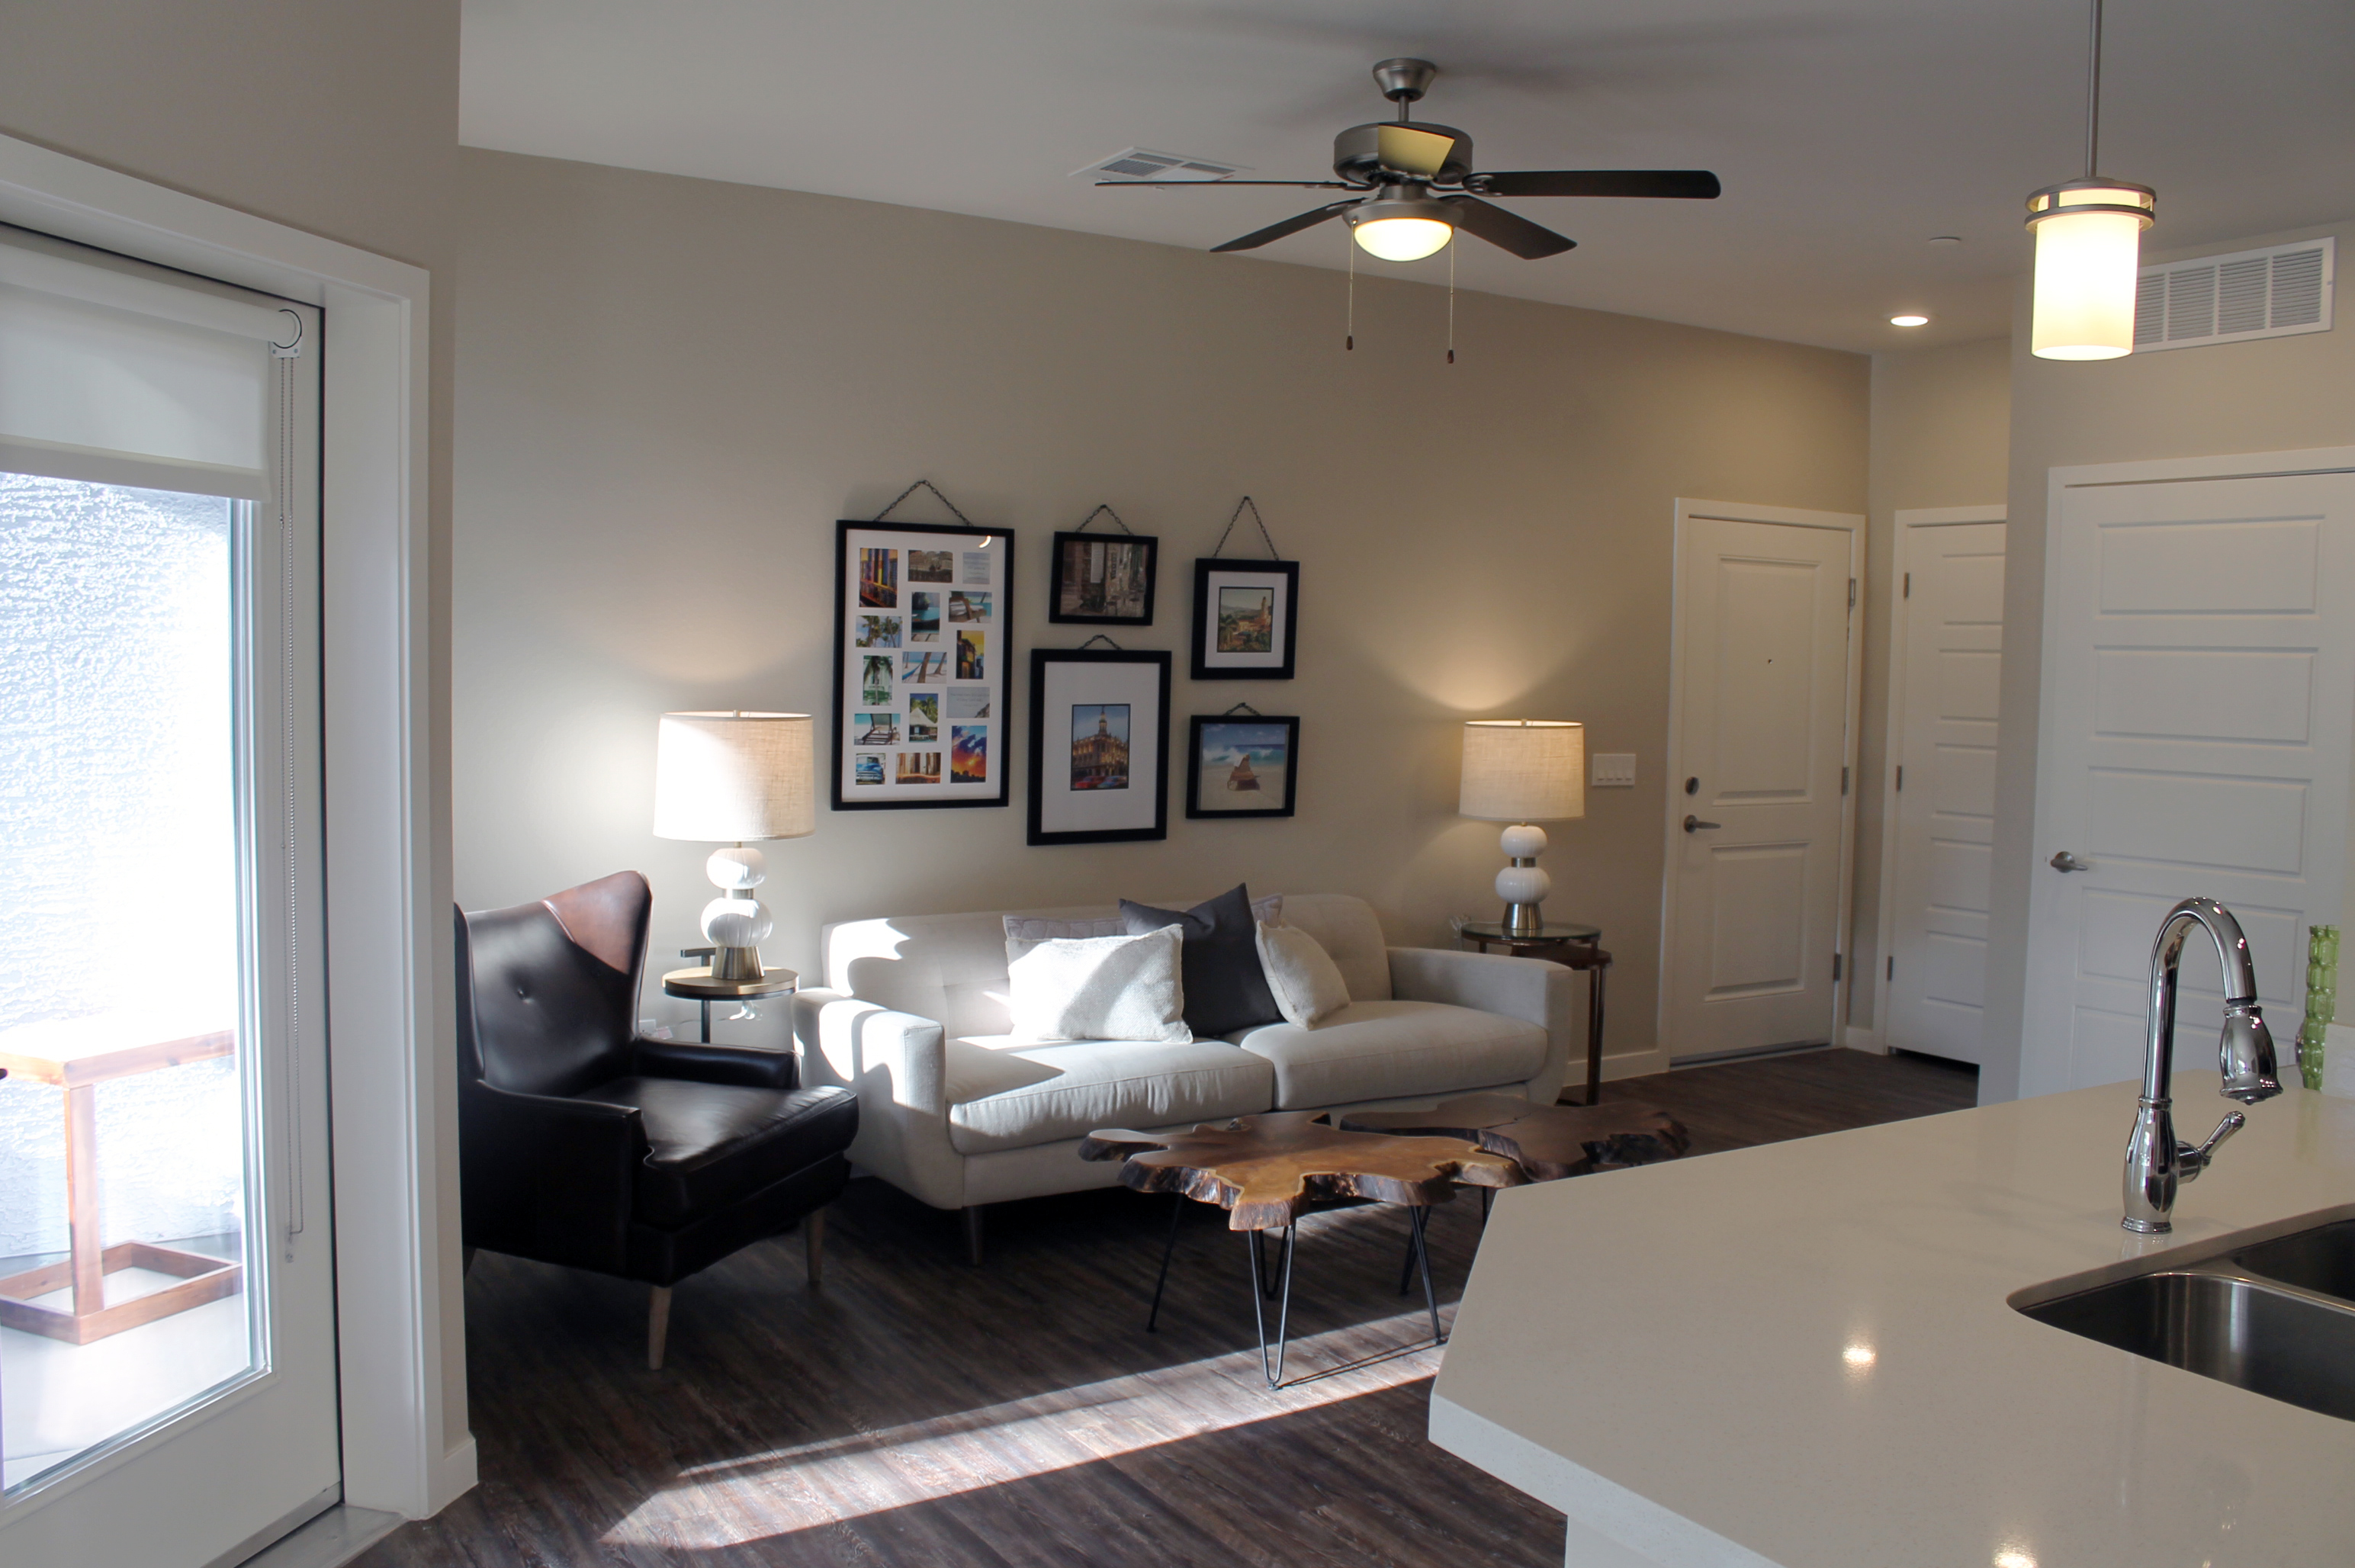 1 Bedroom Apartments In Phoenix Az The Place At Sonoran Trails 480 750 6737 Mclife Phoenix